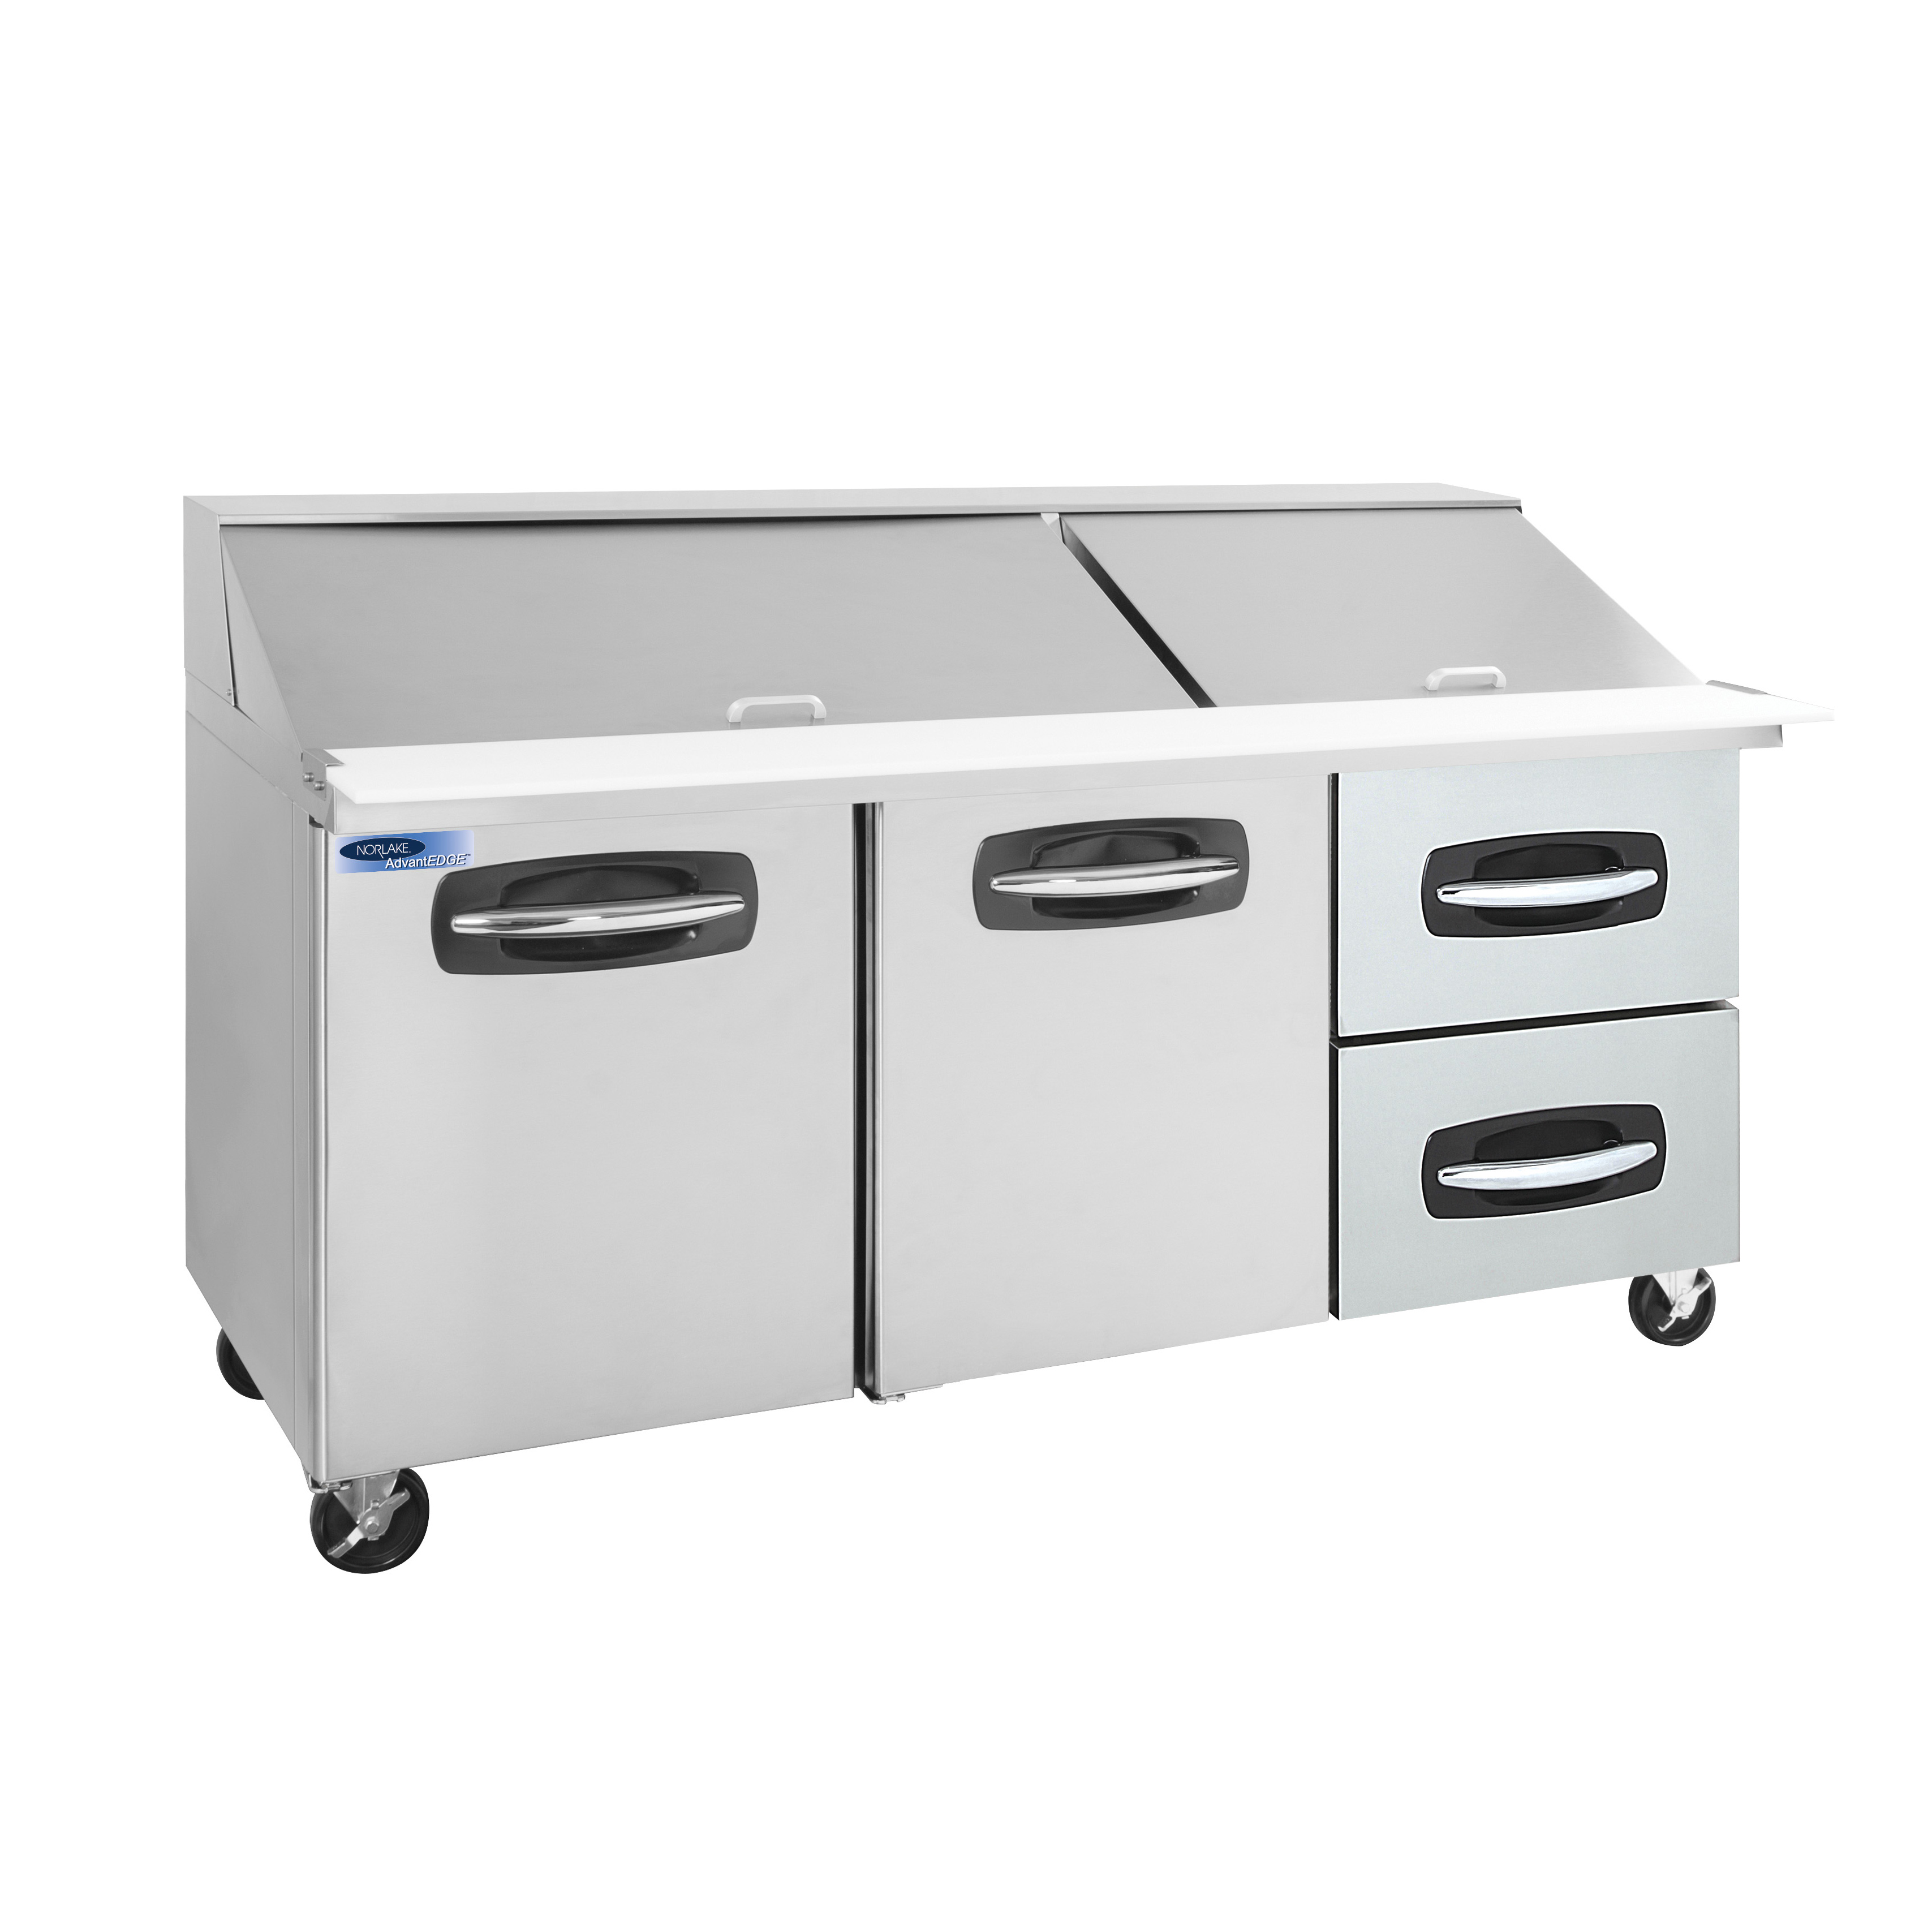 Nor-Lake NLSMP72-30A-002B refrigerated counter, mega top sandwich / salad unit